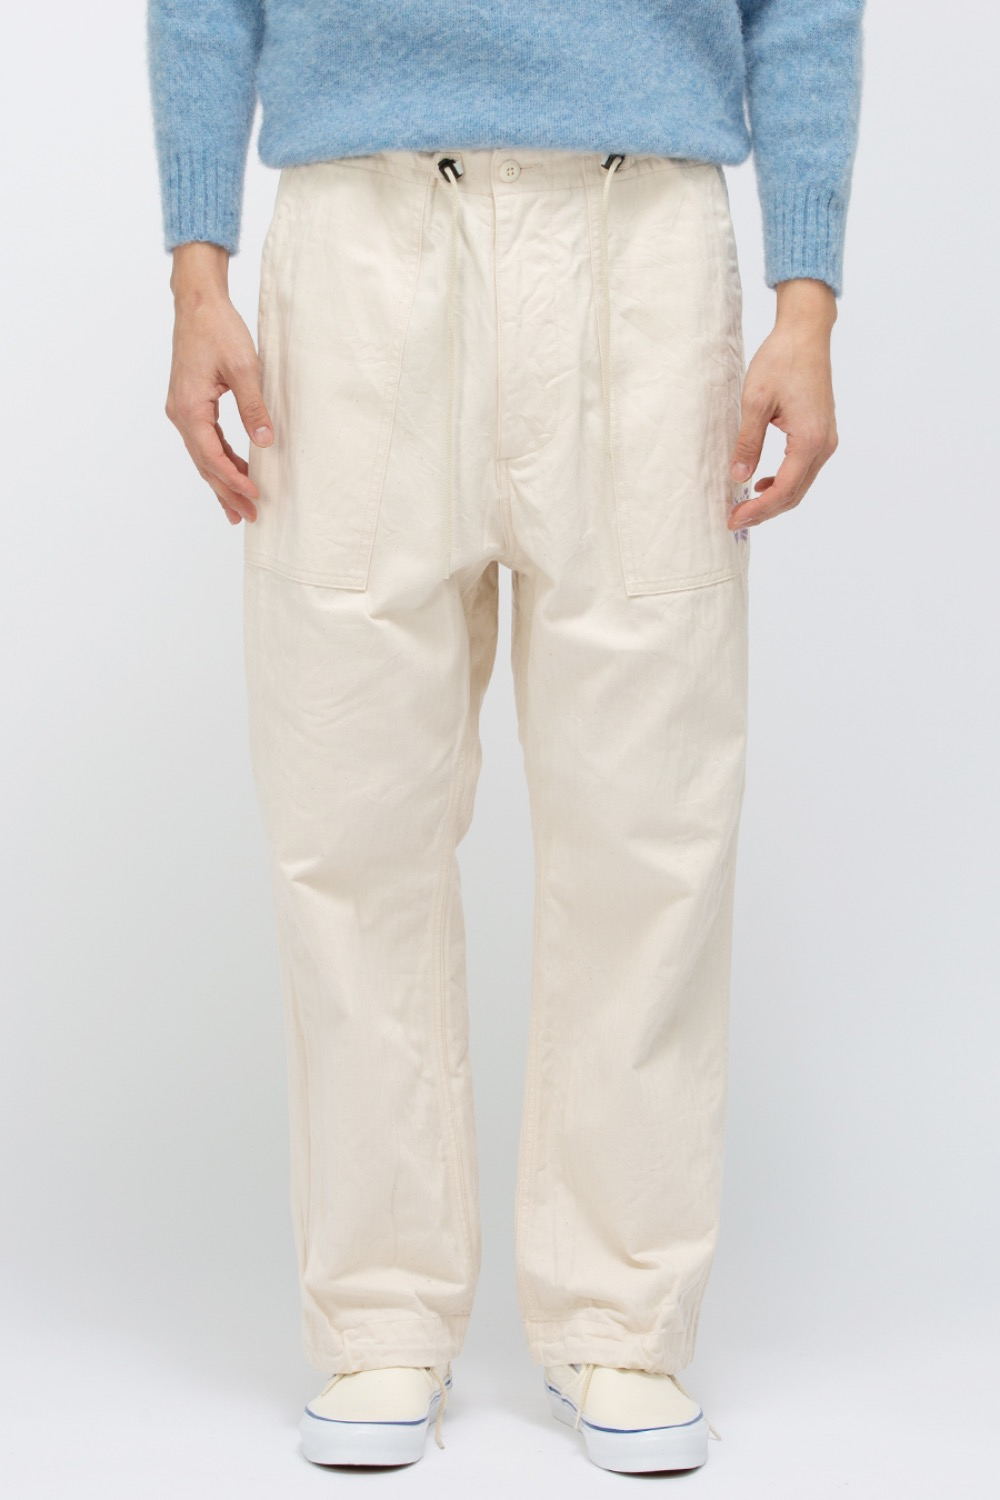 STRING FATIGUE PANT - COTTON HERRINGBONE OFFWHITE